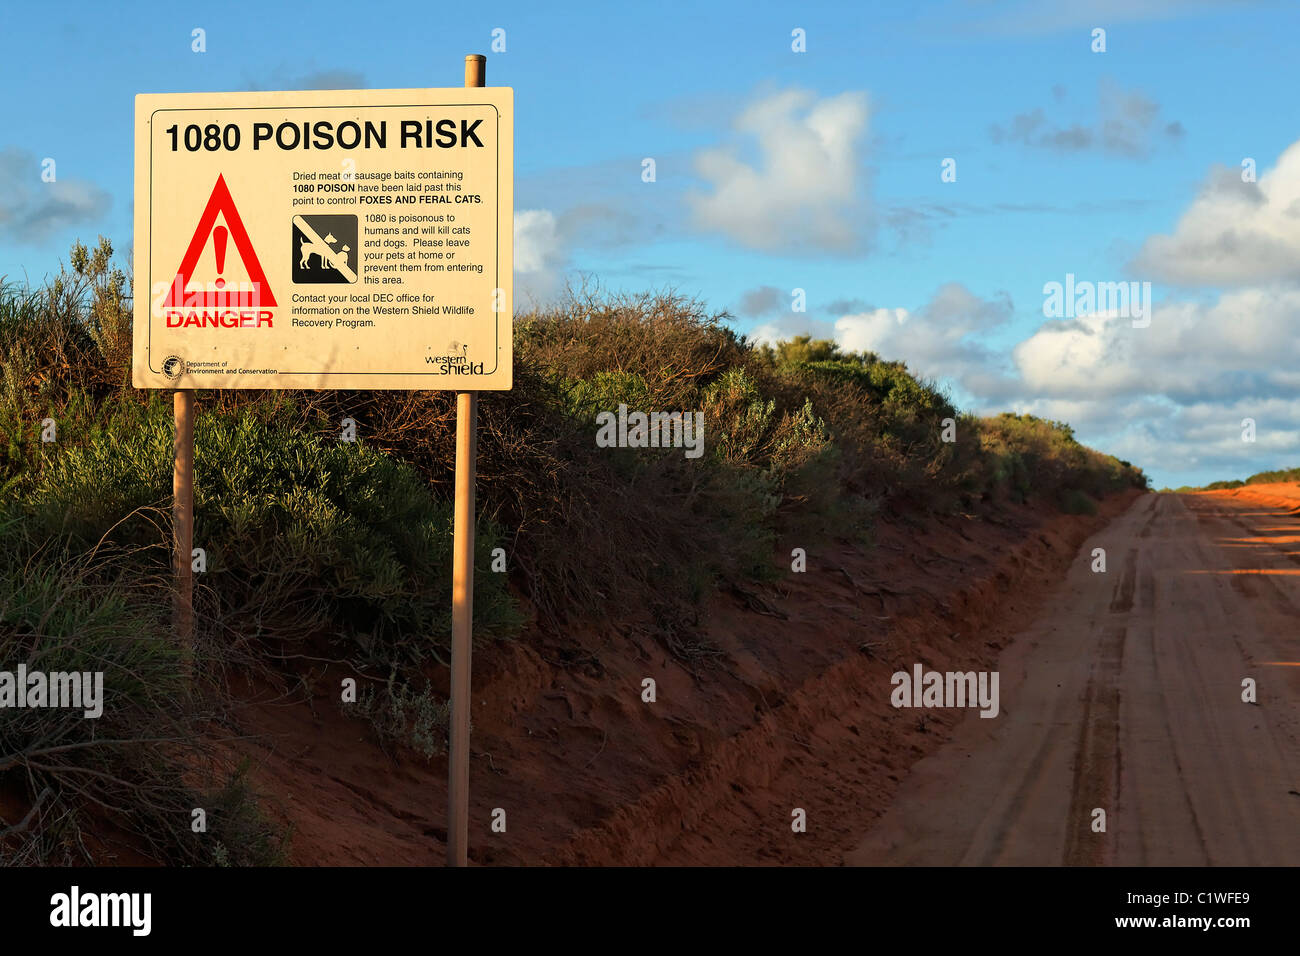 1080 Poison Risk Sign in Australian Country Area, Shark Bay Western Australia - Stock Image